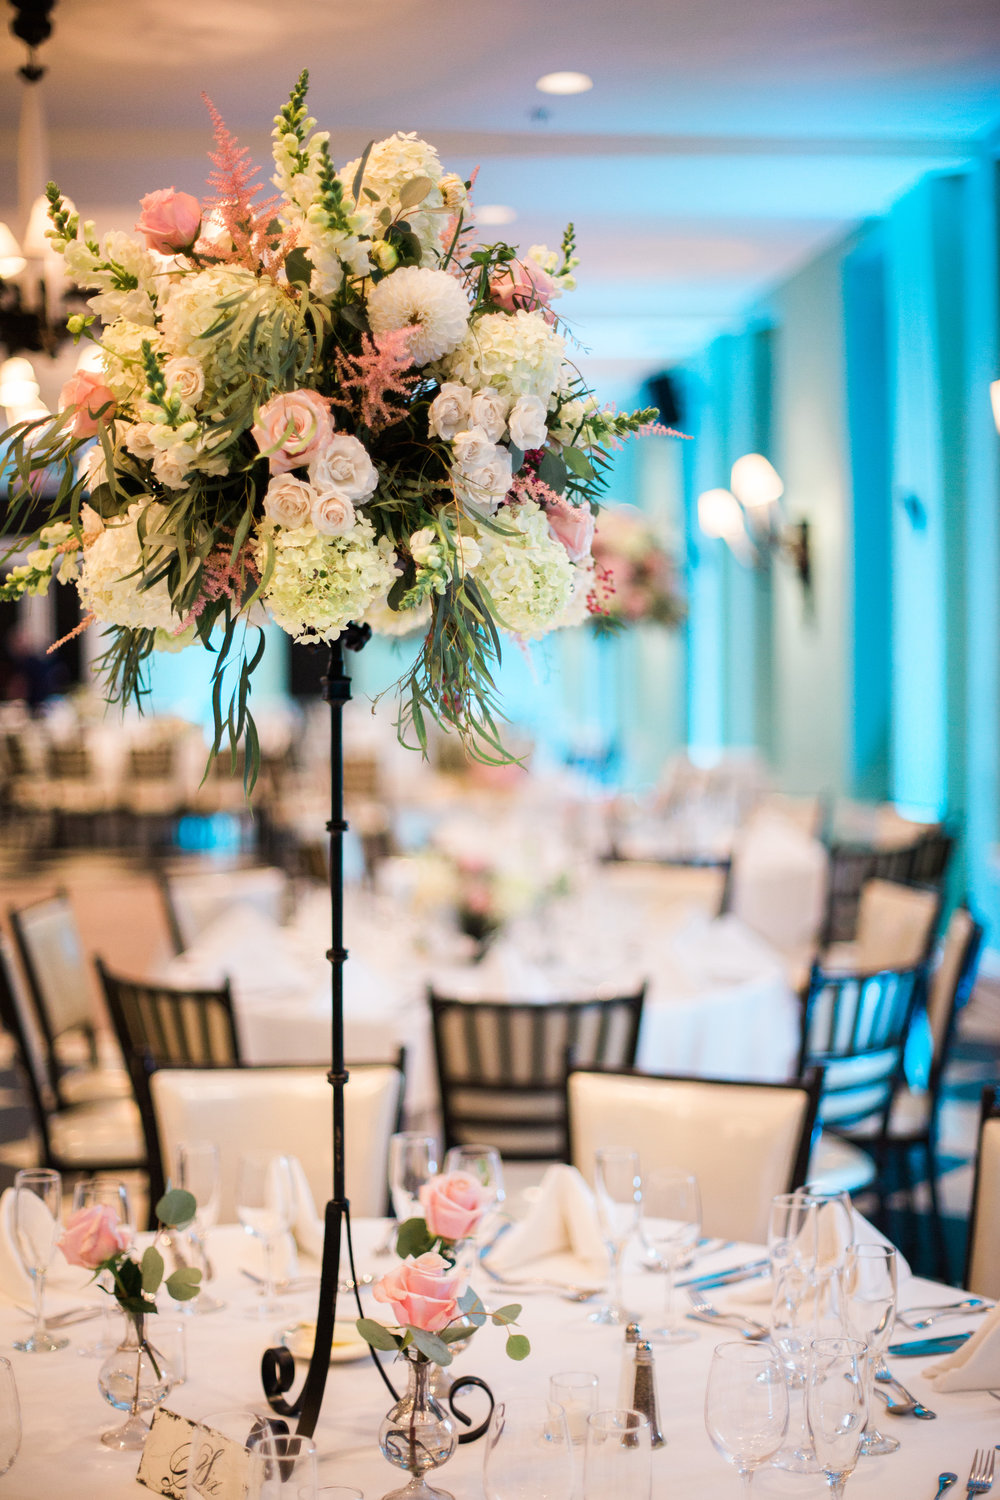 Cape May Wedding, Congress Hall, Cape Resort Weddings, White and Blush, Centerpiece, Hudson Nichols Photography